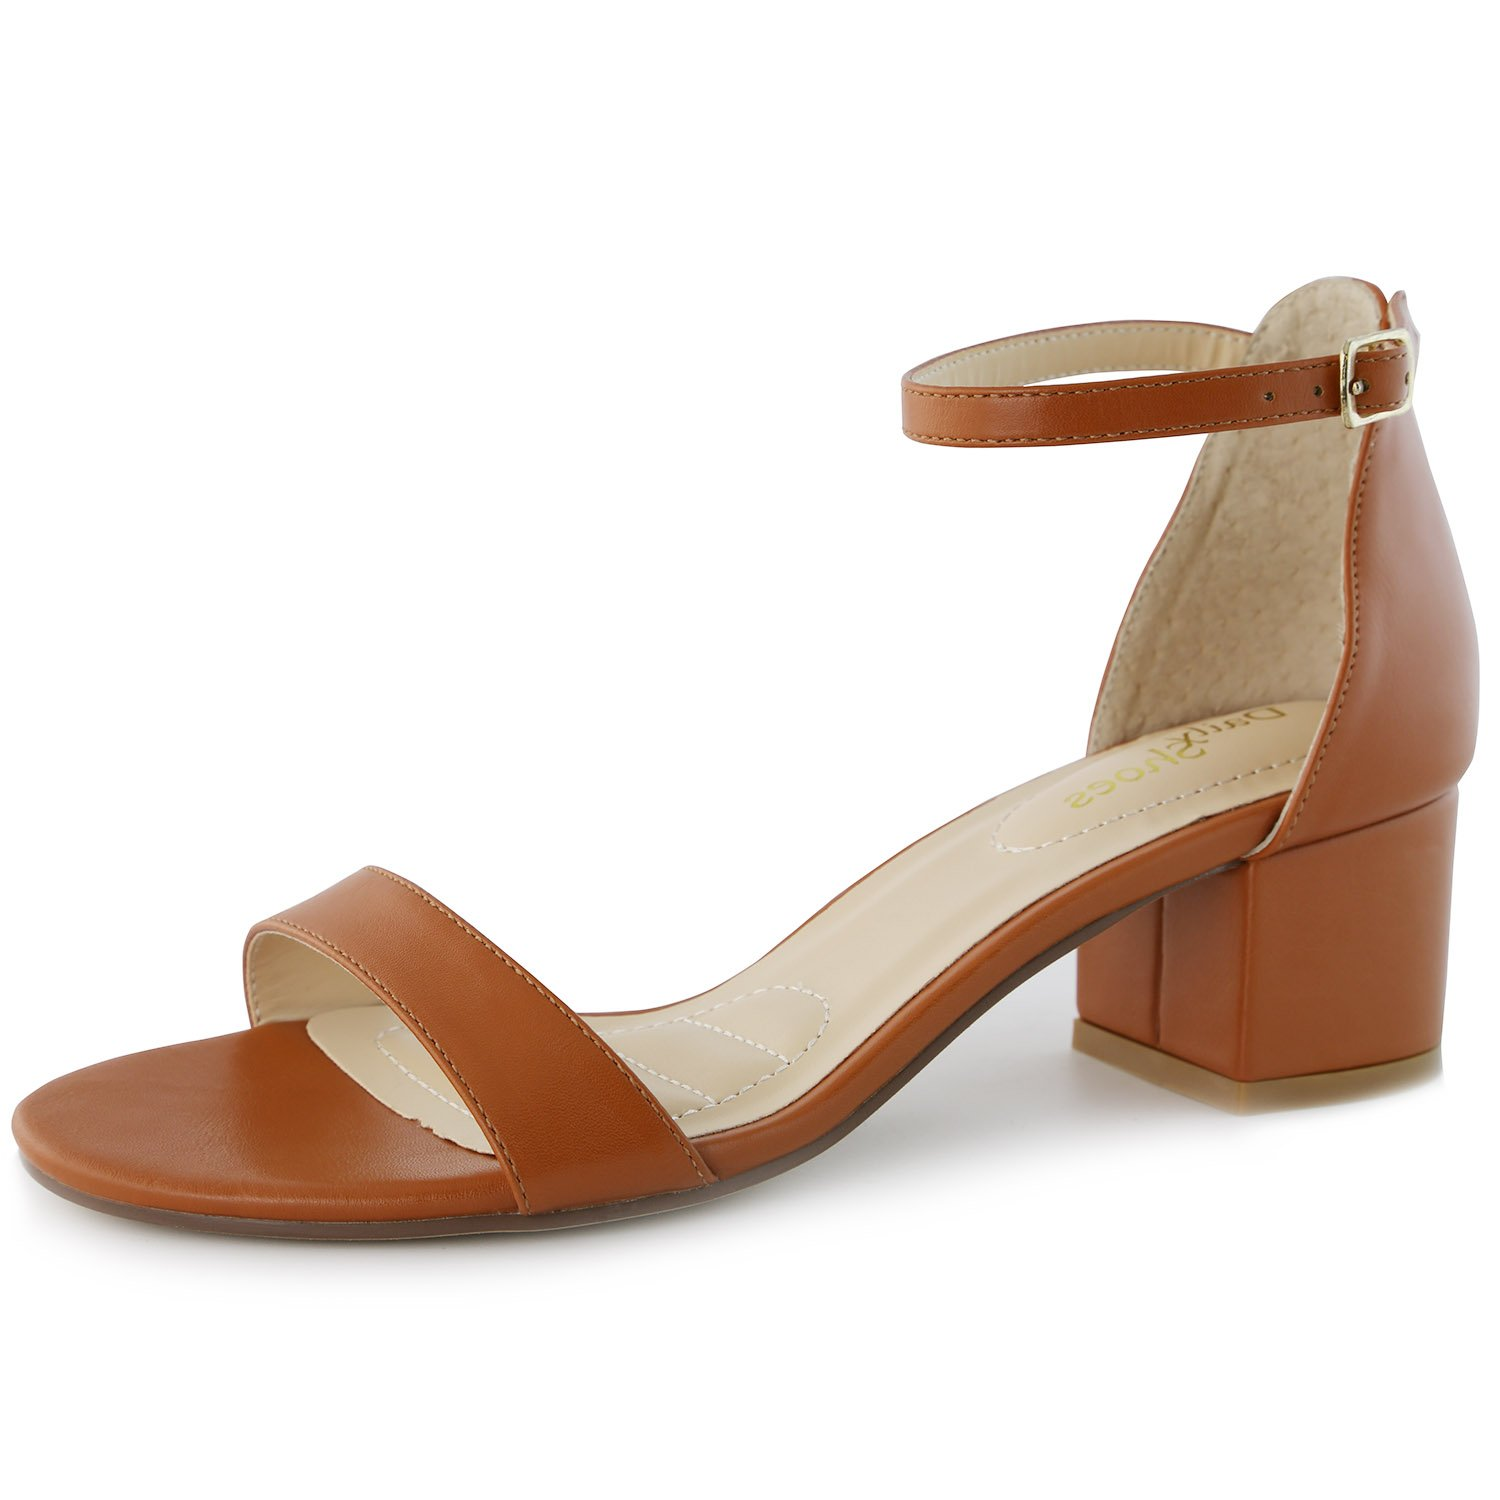 83f1b713bb5 Get Quotations · DailyShoes Women s Strappy High Heels with Chunky Heel - 2  inch Heel - Leather Counter Back